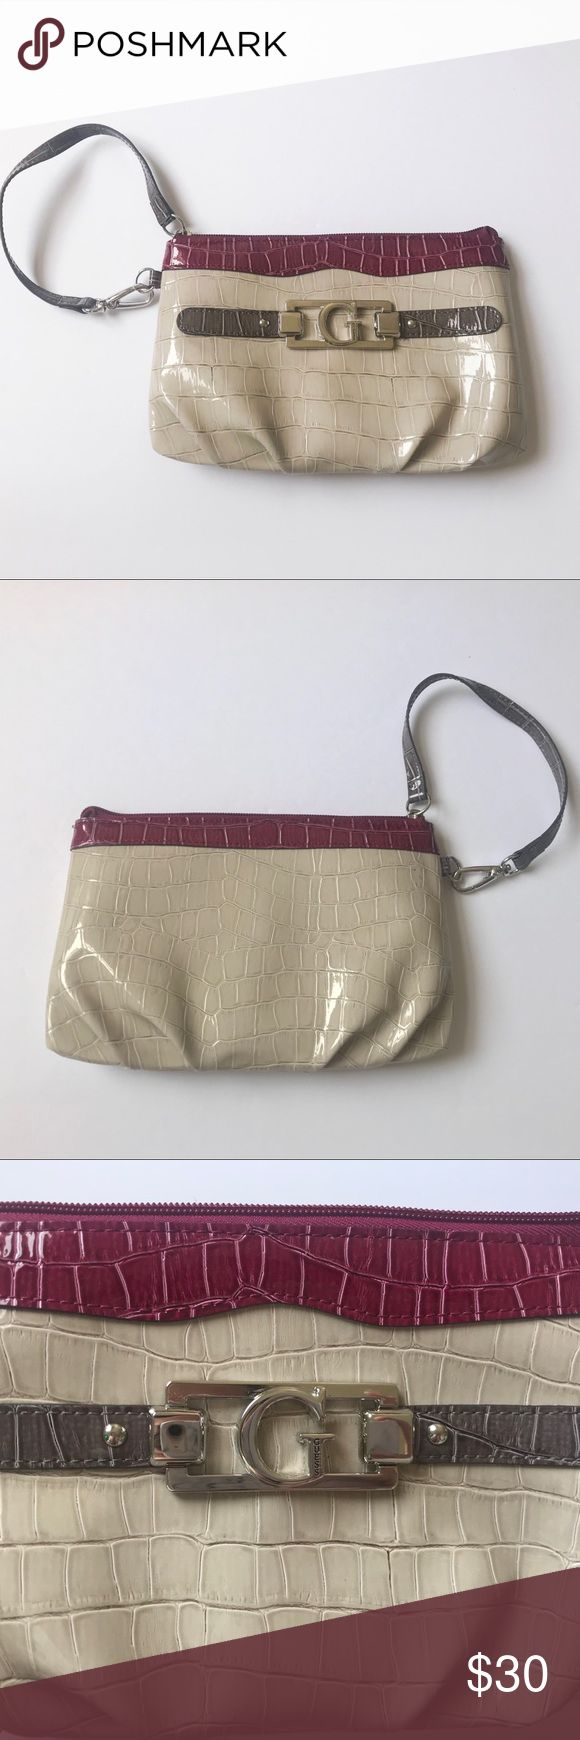 """Guess clutch Guess clutch gray and purple  Perfect condition outside  Has stains inside  Length 8,5"""" Height 6"""" Guess Bags Clutches & Wristlets"""